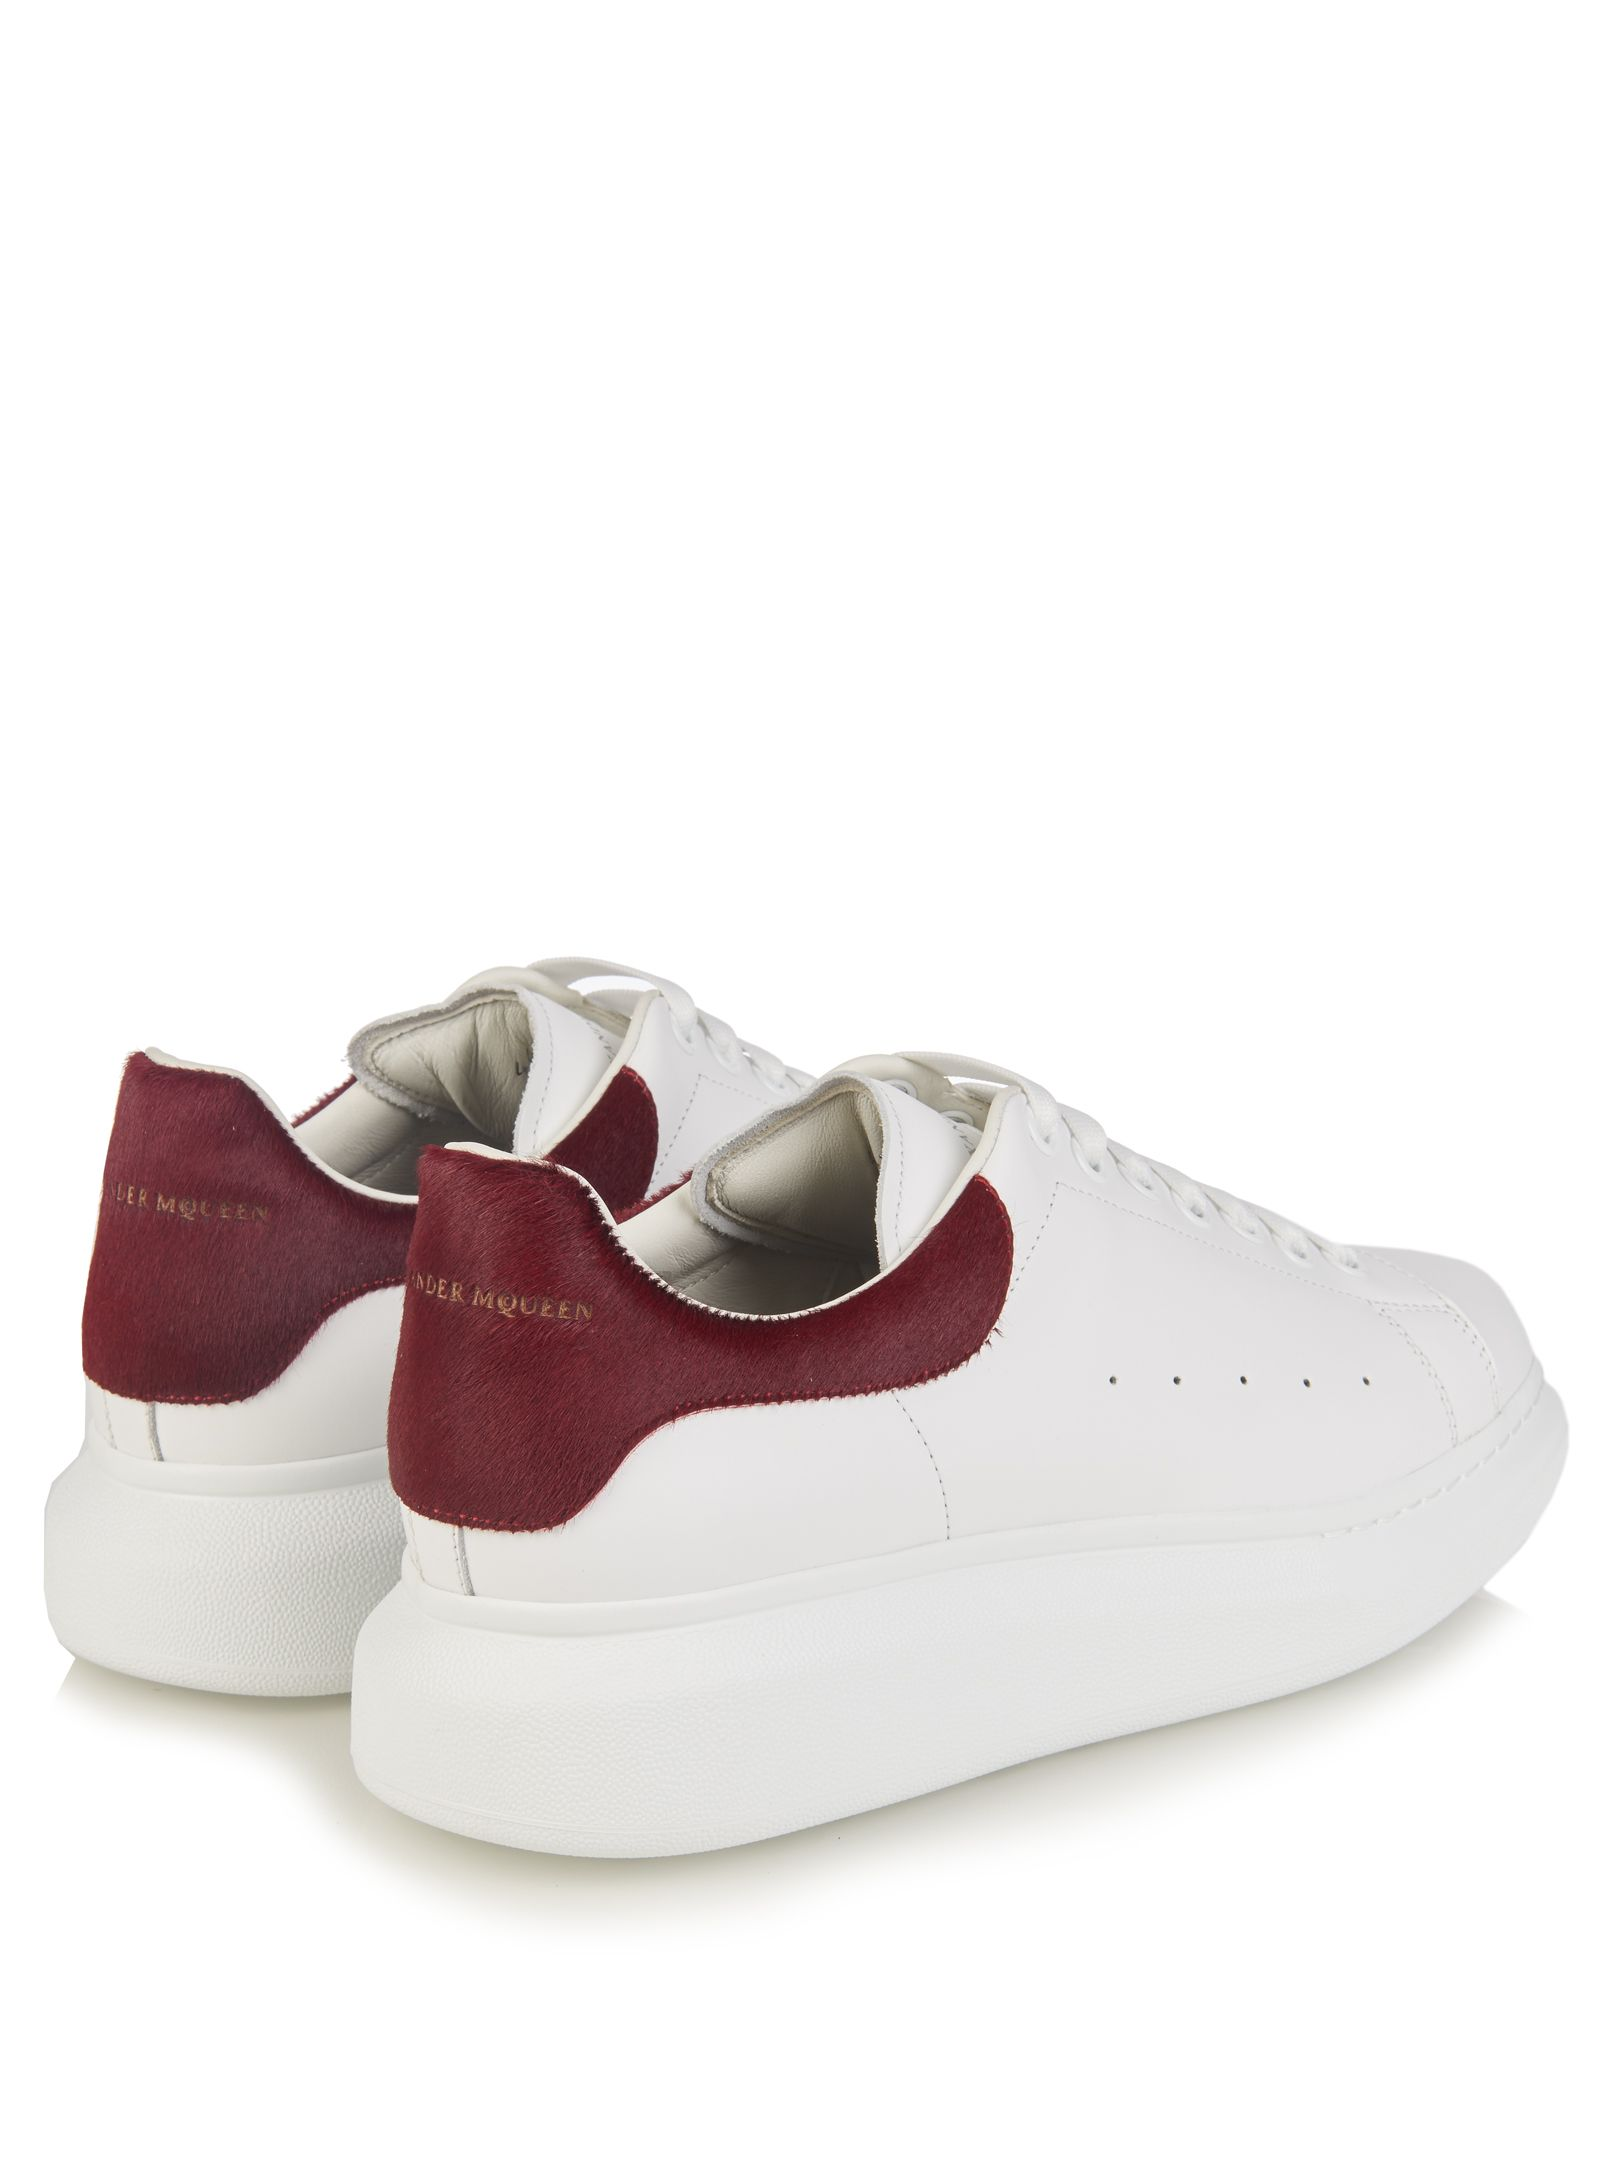 Raised sole low top leather trainers   Alexander McQueen